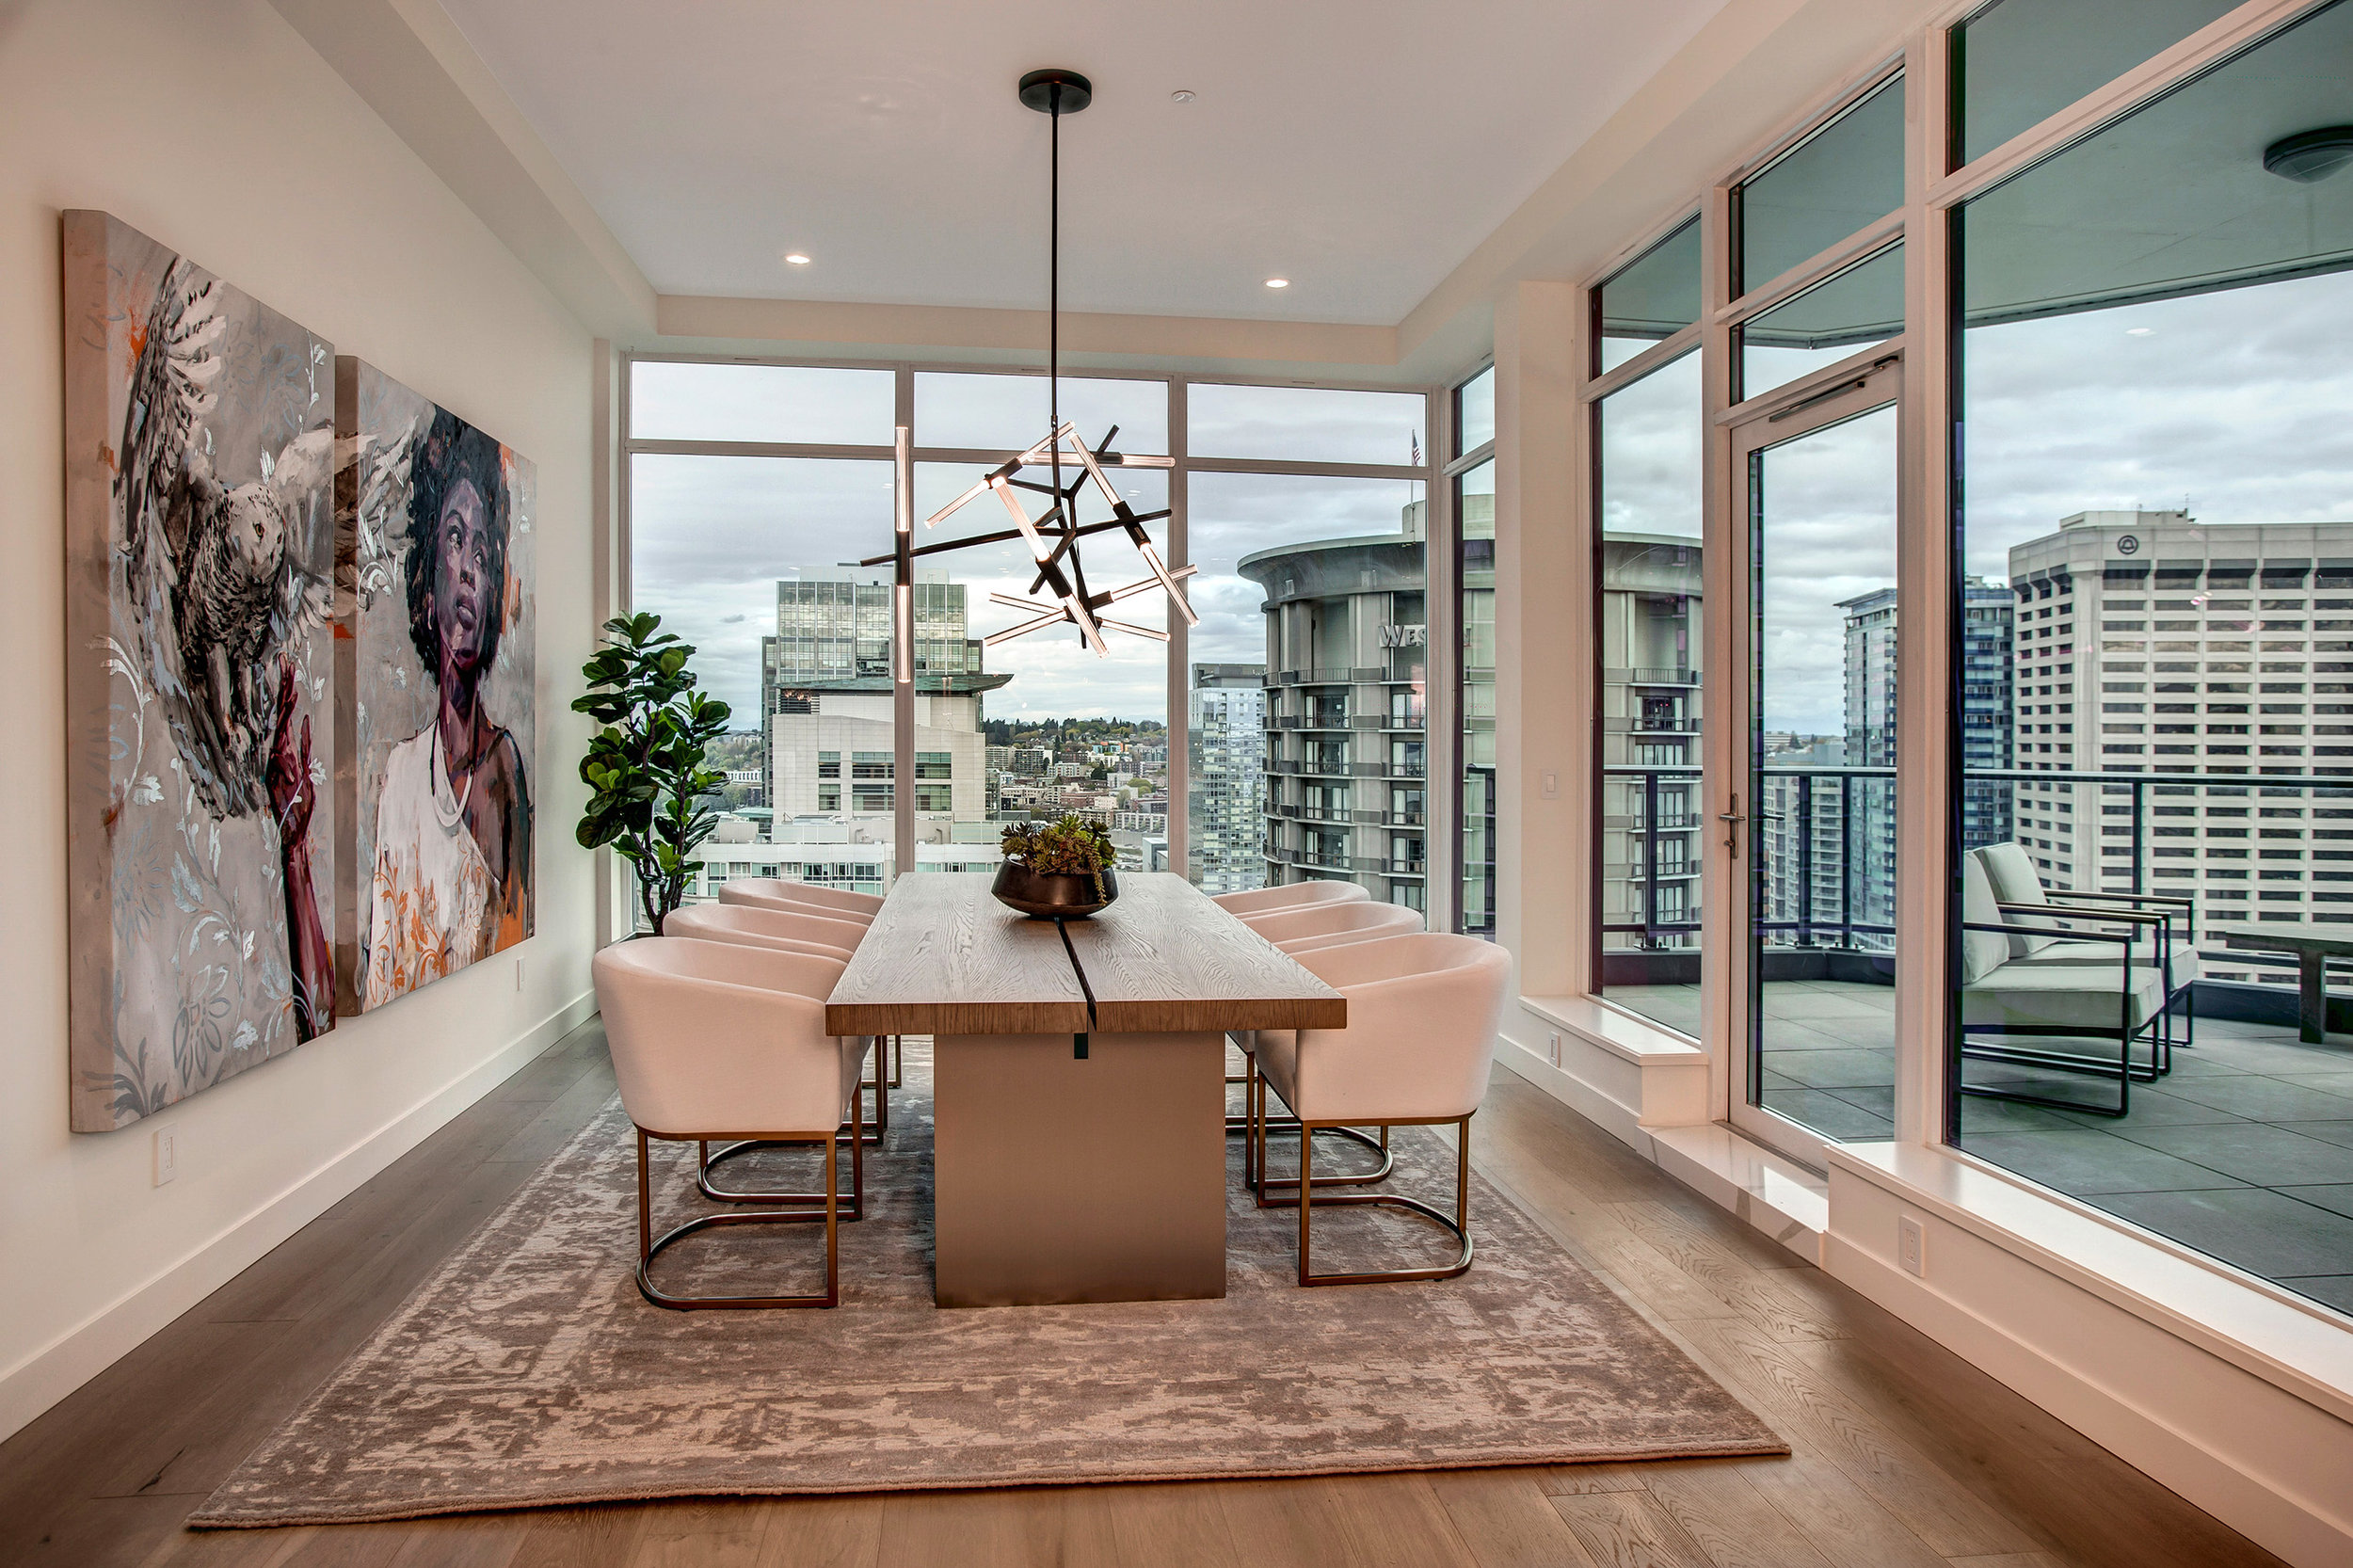 Bright and dramatic dining space featuring floor to ceiling windows with southeast facing views and access to covered balcony.